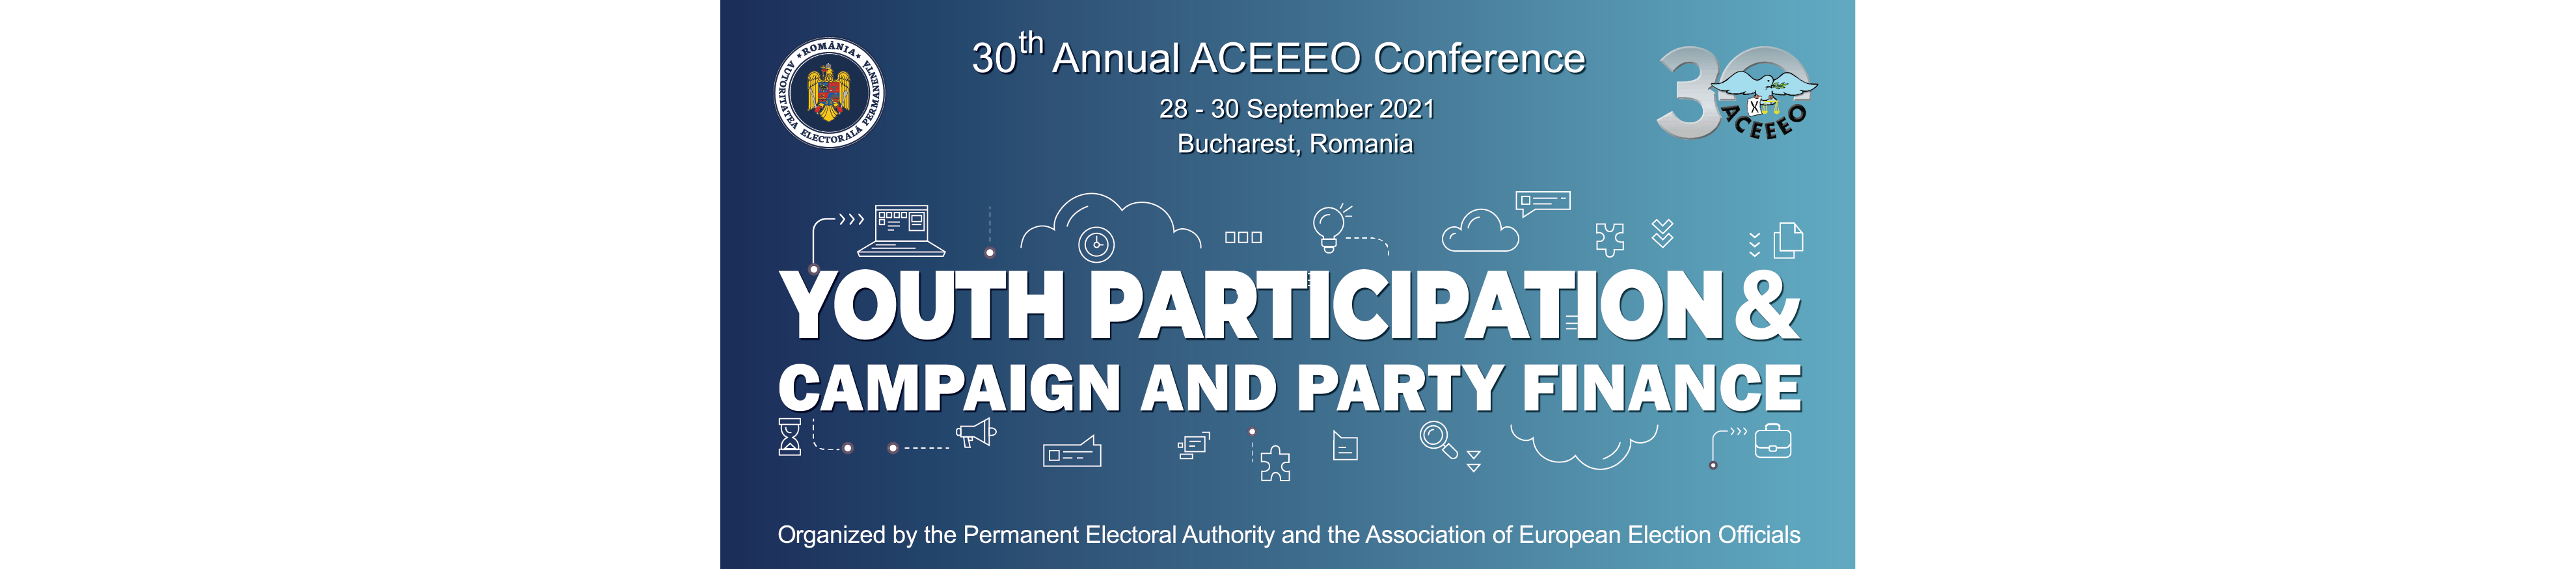 30th Annual Conference and General Assembly of the ACEEEO in Bucharest, Romania